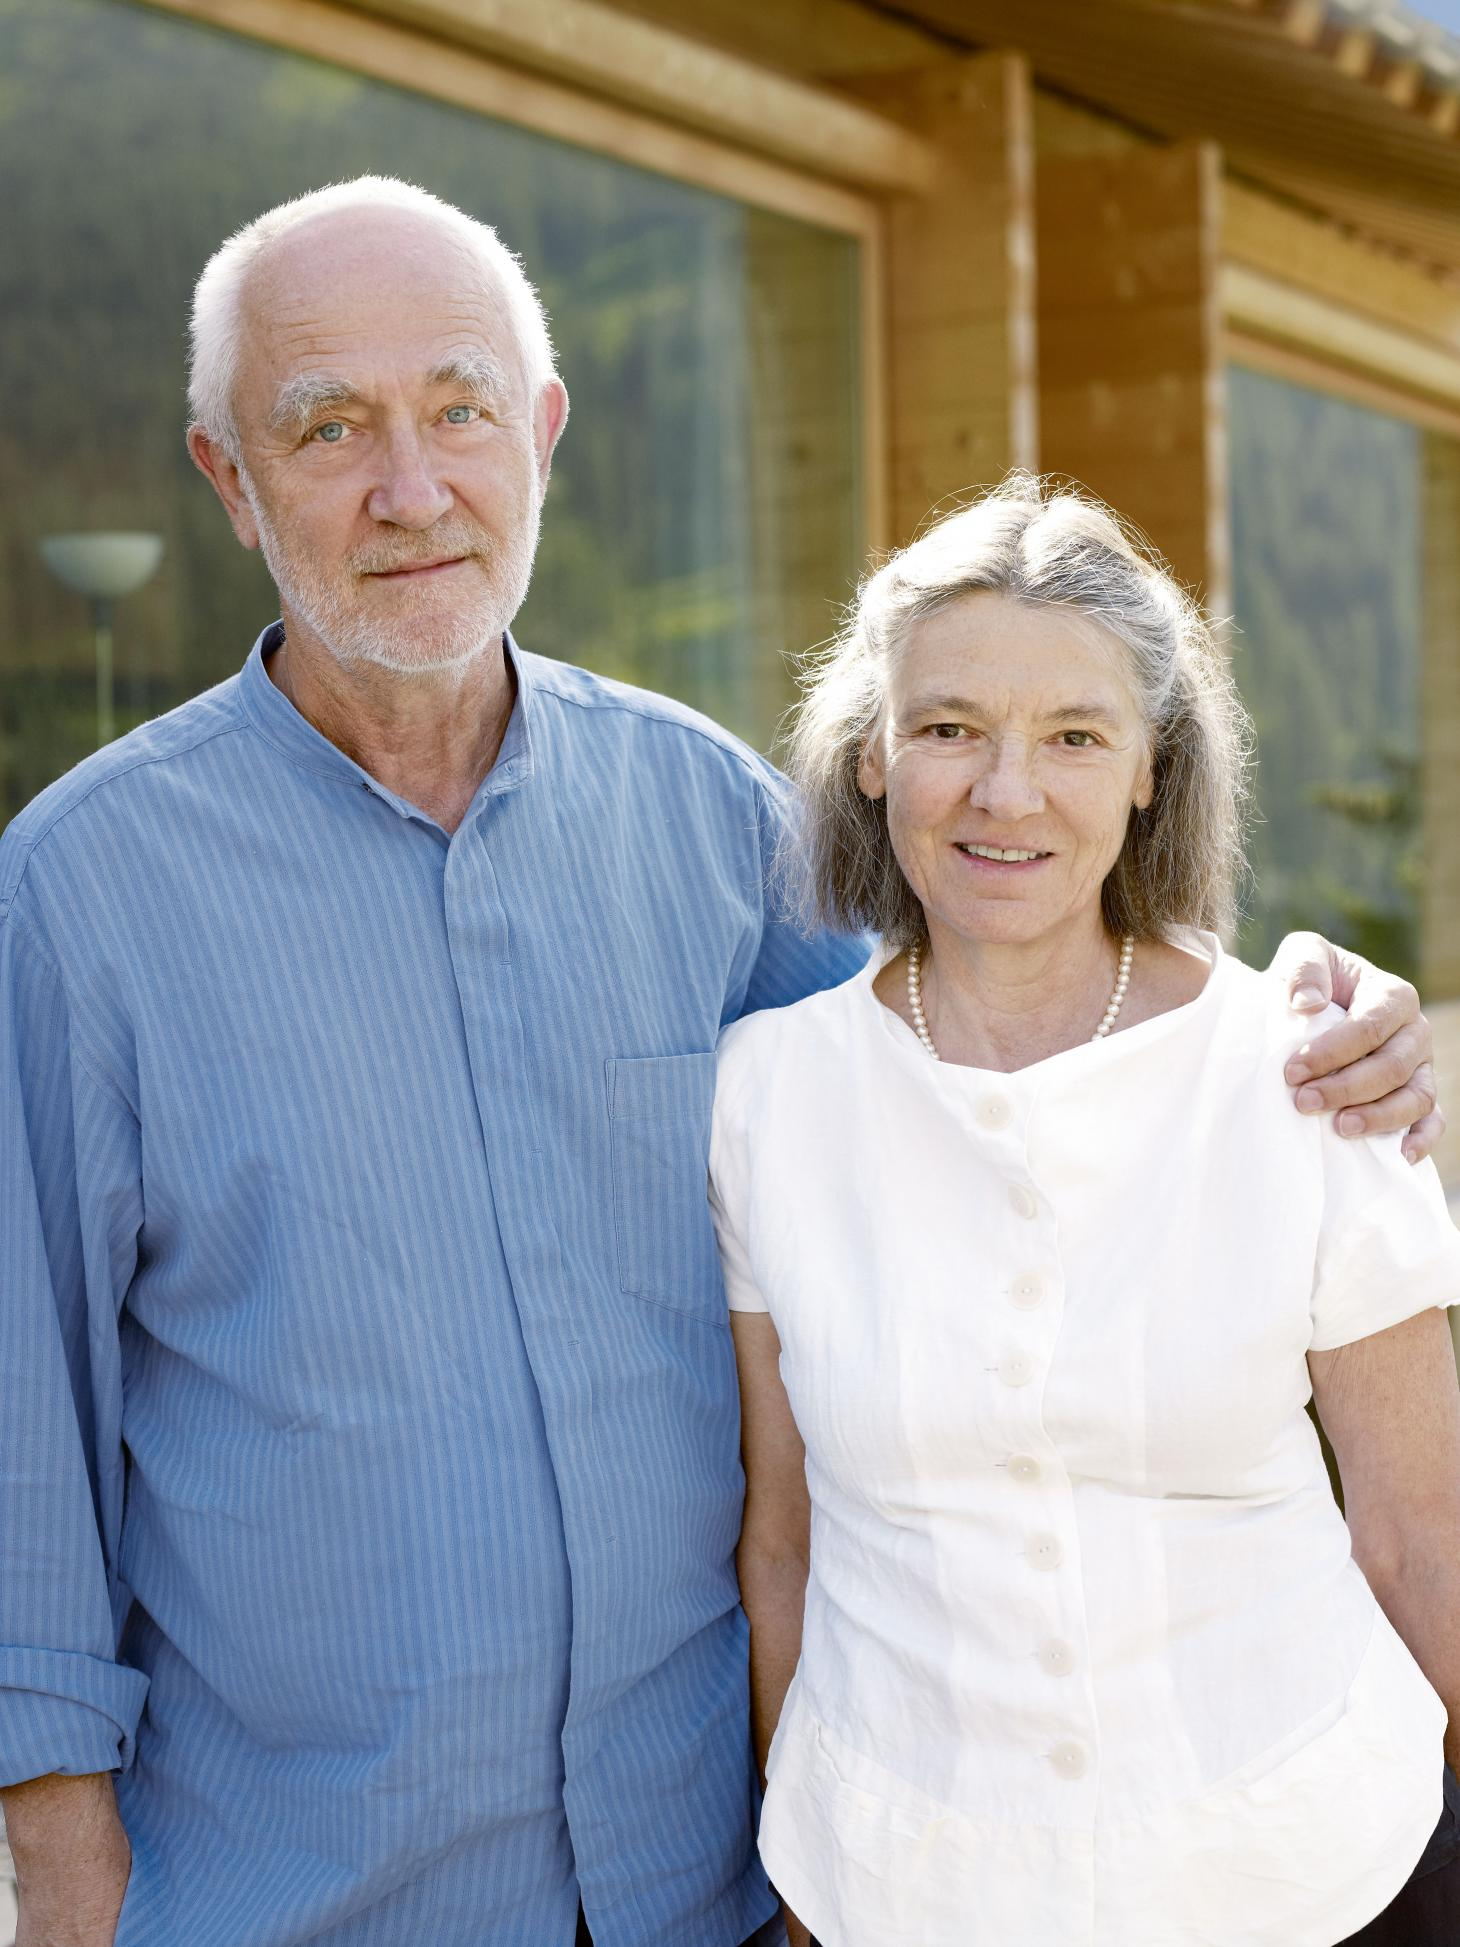 Portrait of Peter Zumthor and Annalisa Zumthor